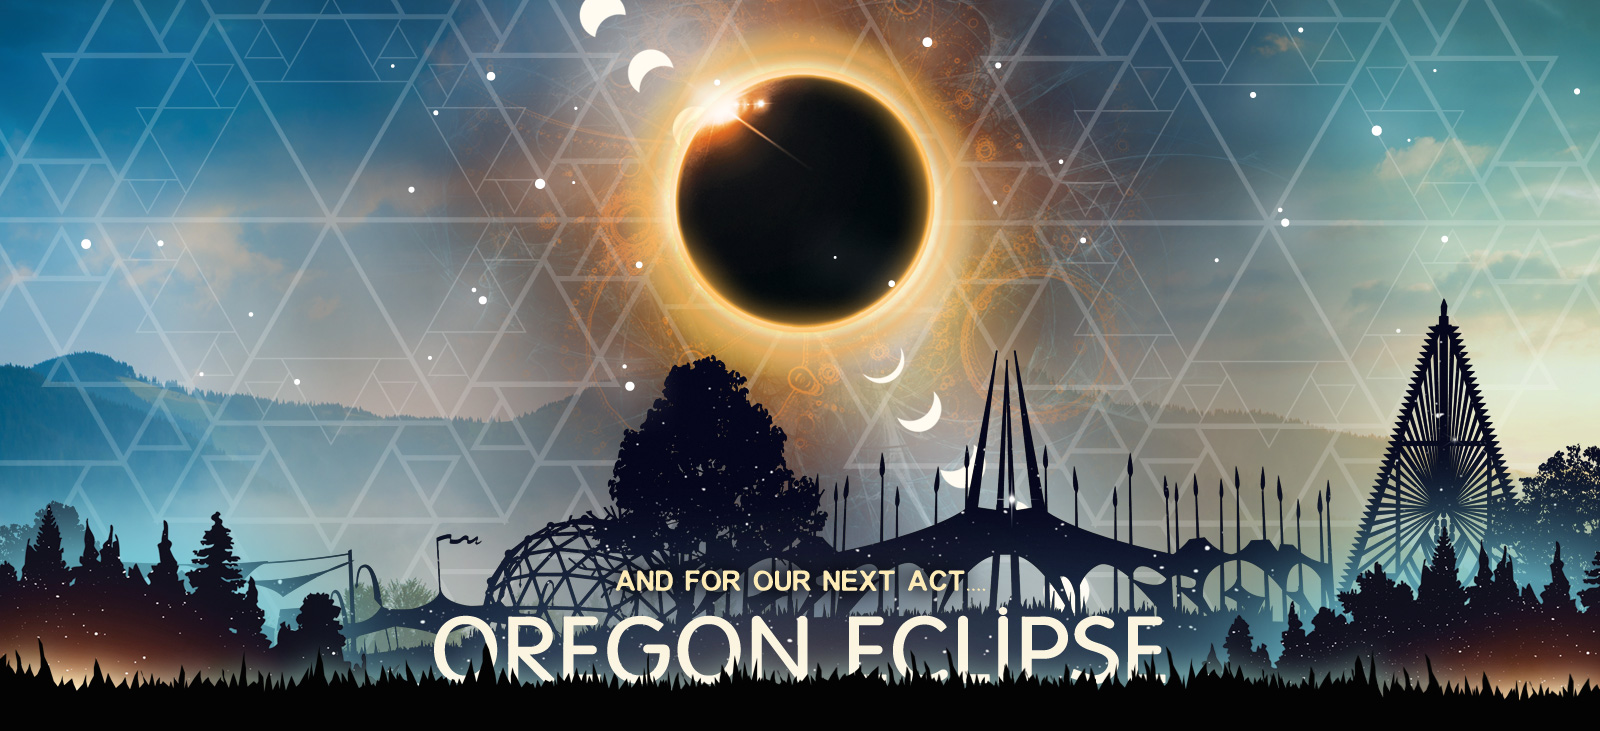 Oregon Eclipse 2017